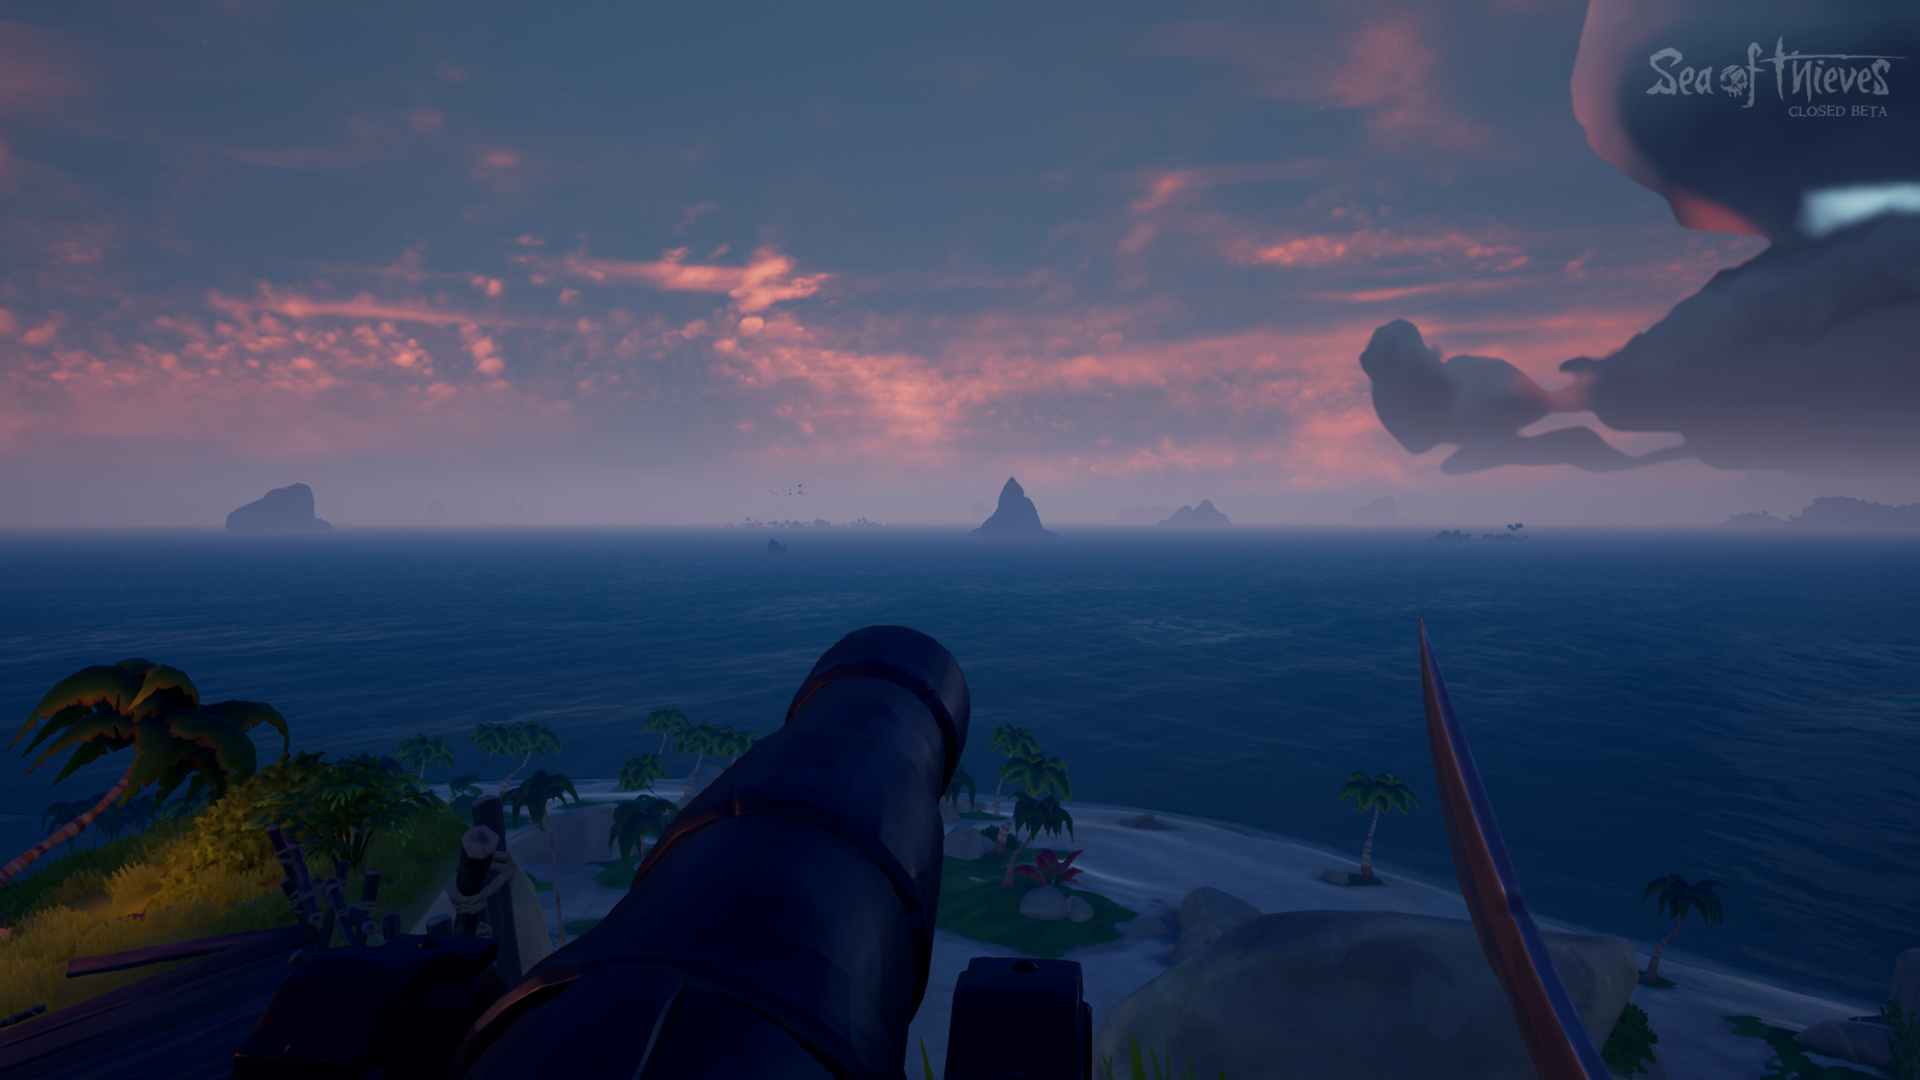 Dusk during the Sea of Thieves Beta